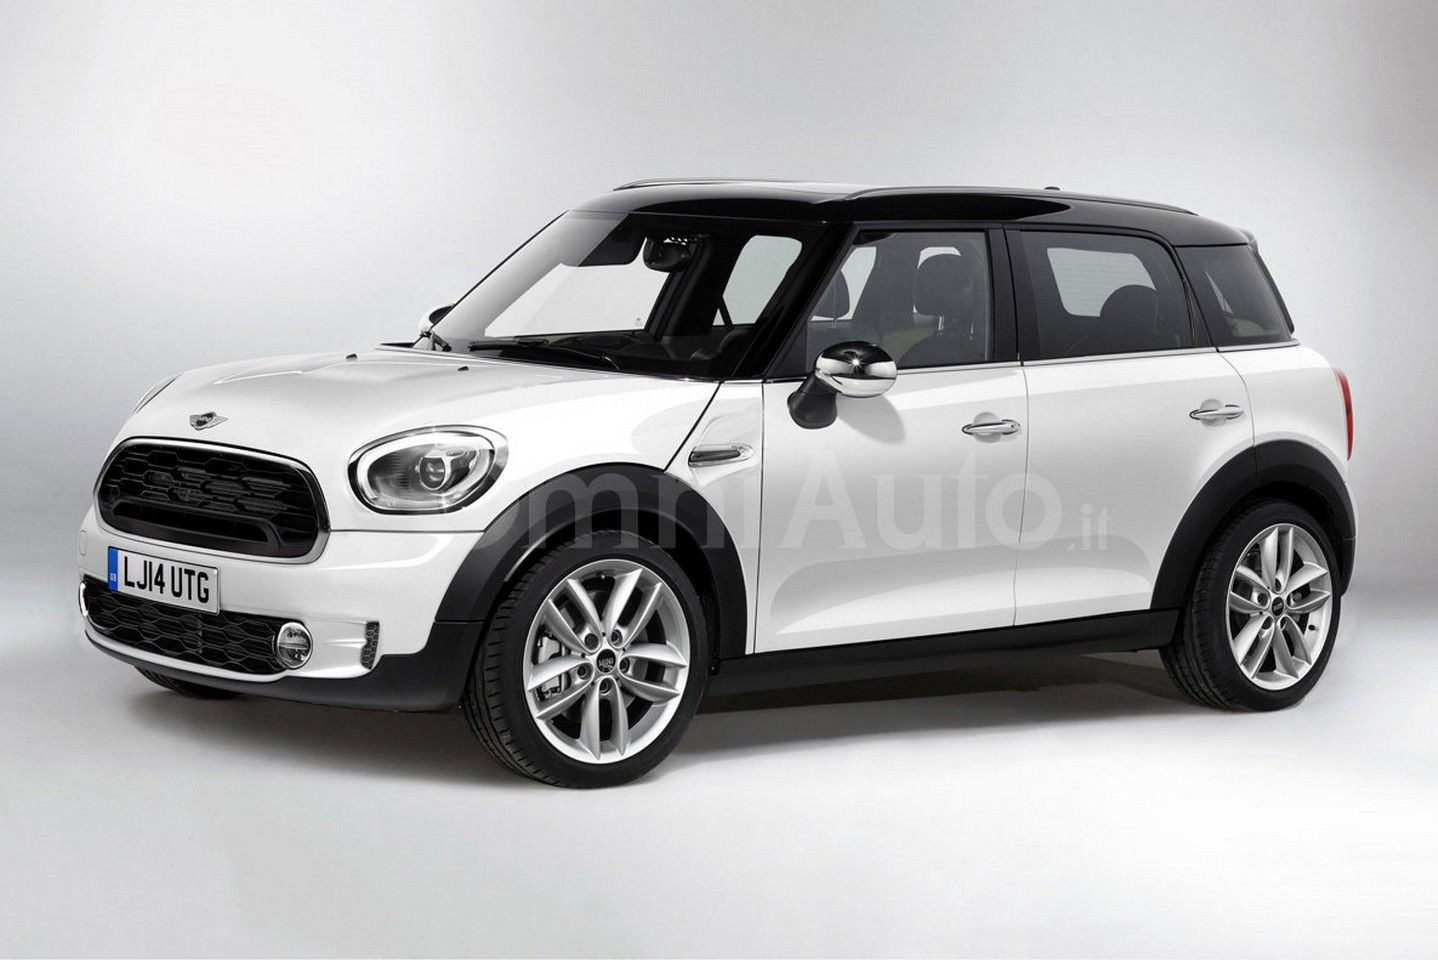 New rendering of the new 2017 mini countryman which will be launched later this year